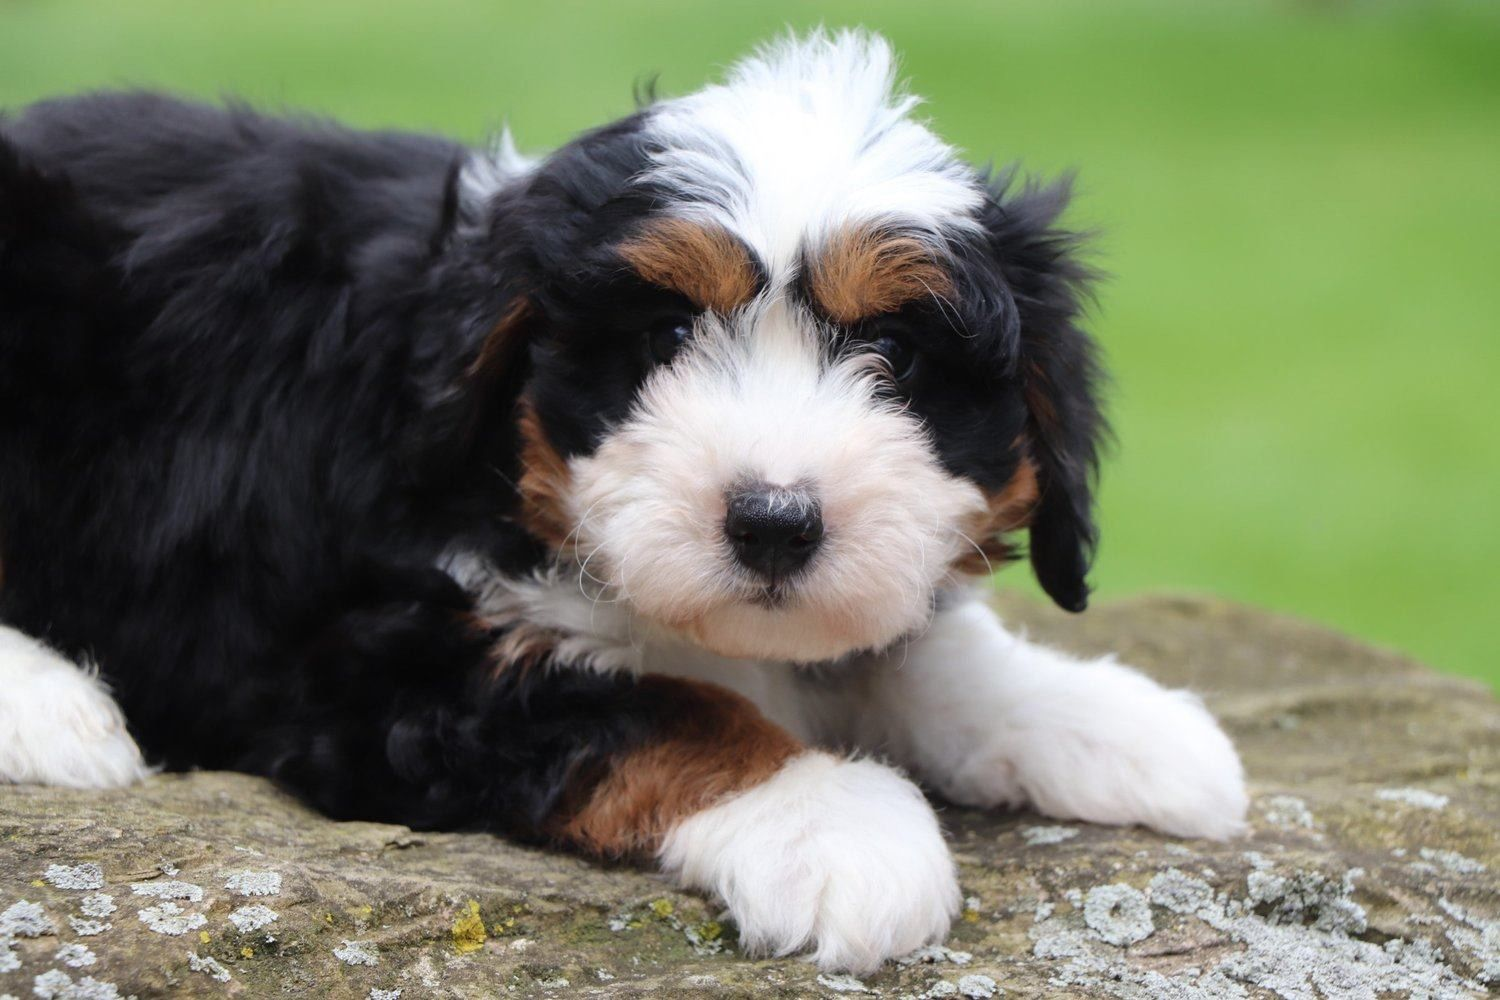 To Find Out More About The Crockett Doodles Program And Our Puppies Please Visit Www Crockettdoodl Bernedoodle Puppy Goldendoodle Puppy Doodle Puppy